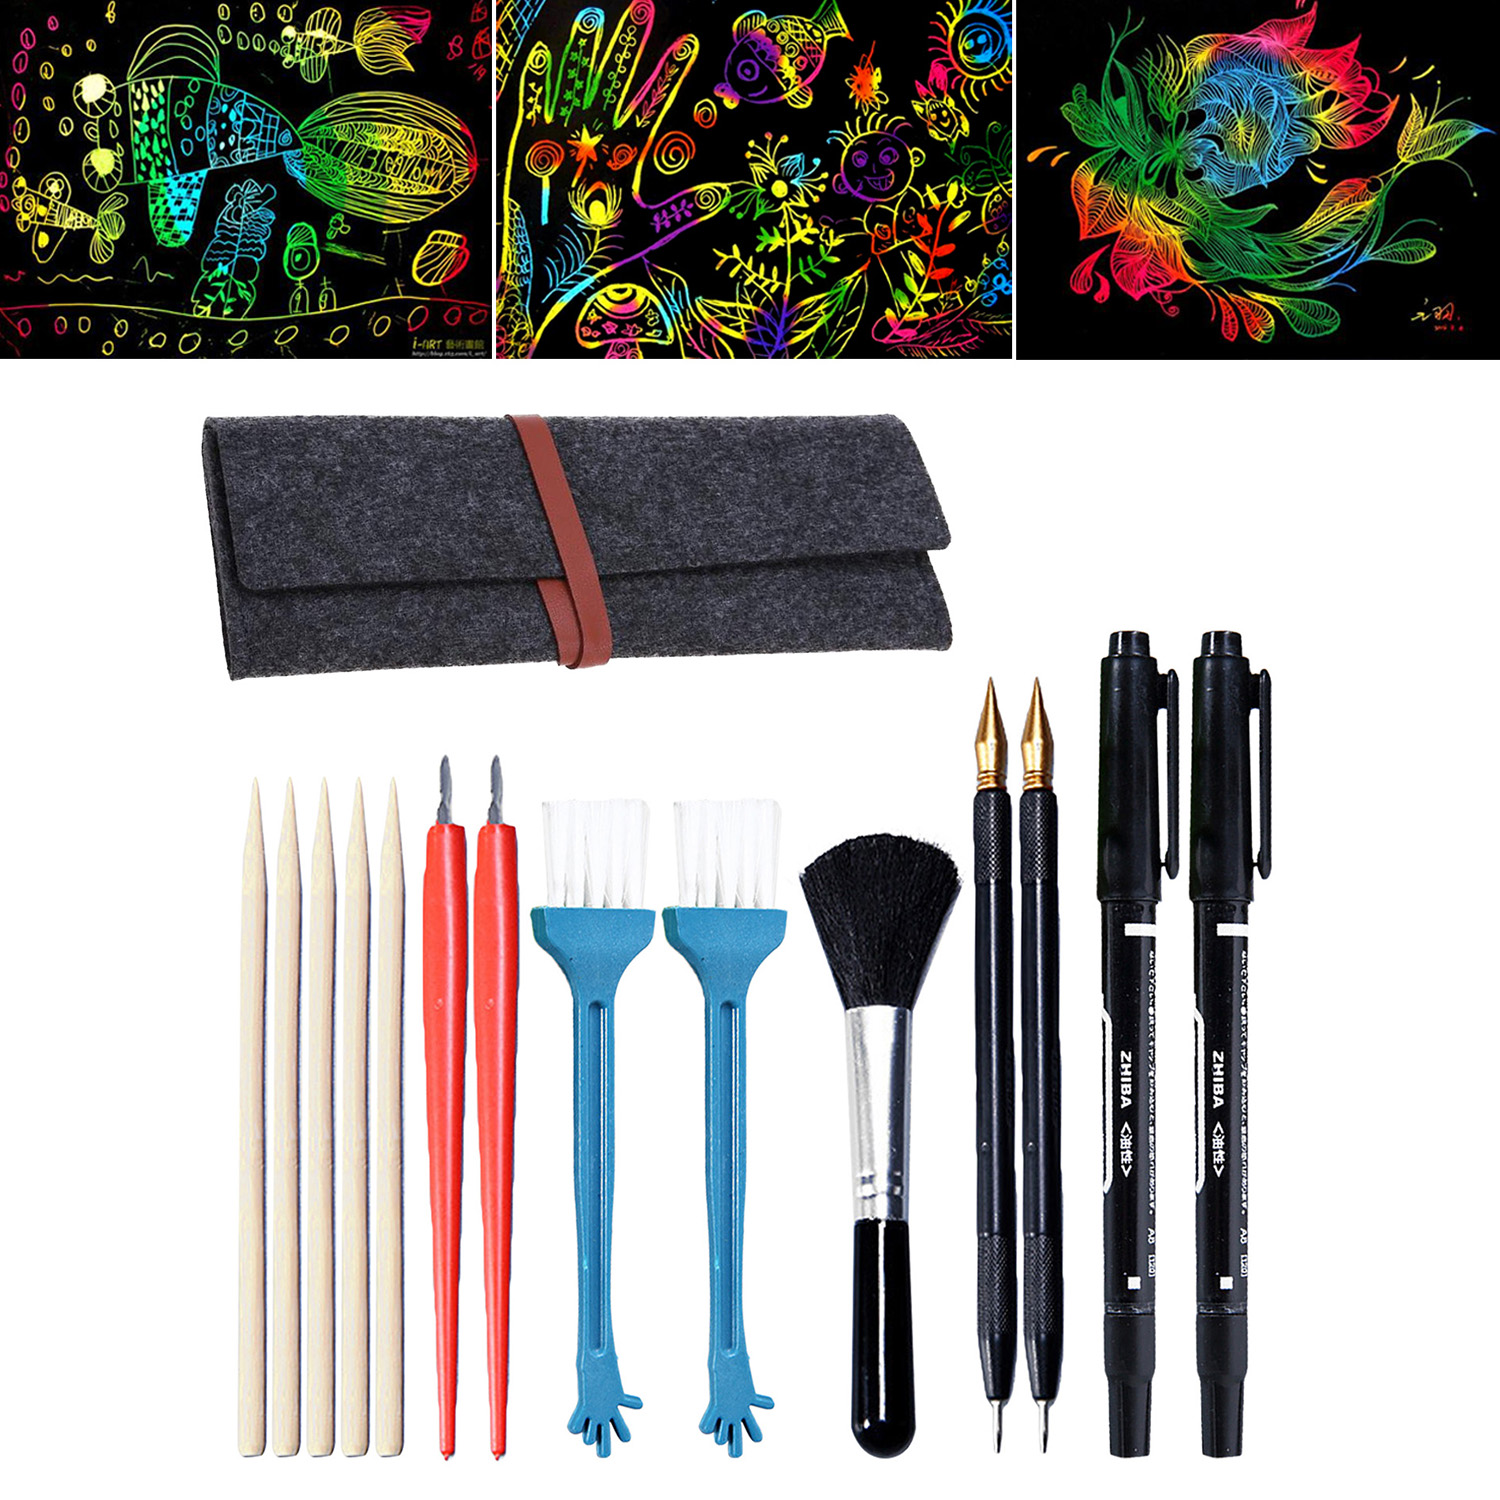 15Pcs Painting Drawing Scratch Tools Set With Bamboo Sticks Scraper Scratch Pen Brush Storage Bag For Kids DIY Scratch Toys